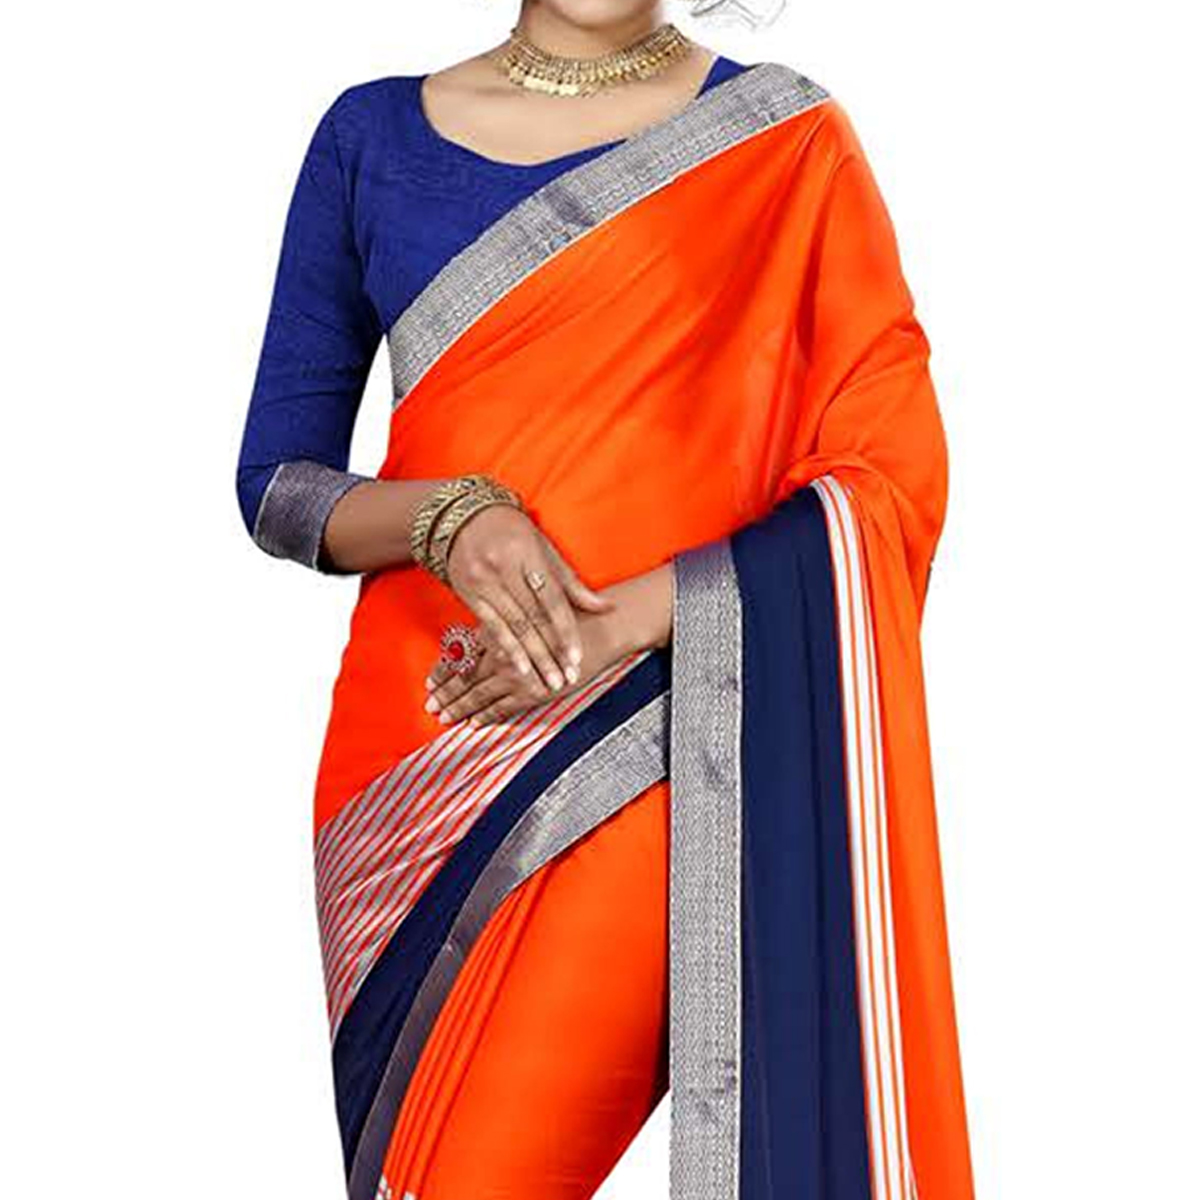 Alluring Orange Colored Casual Printed Chiffon Saree